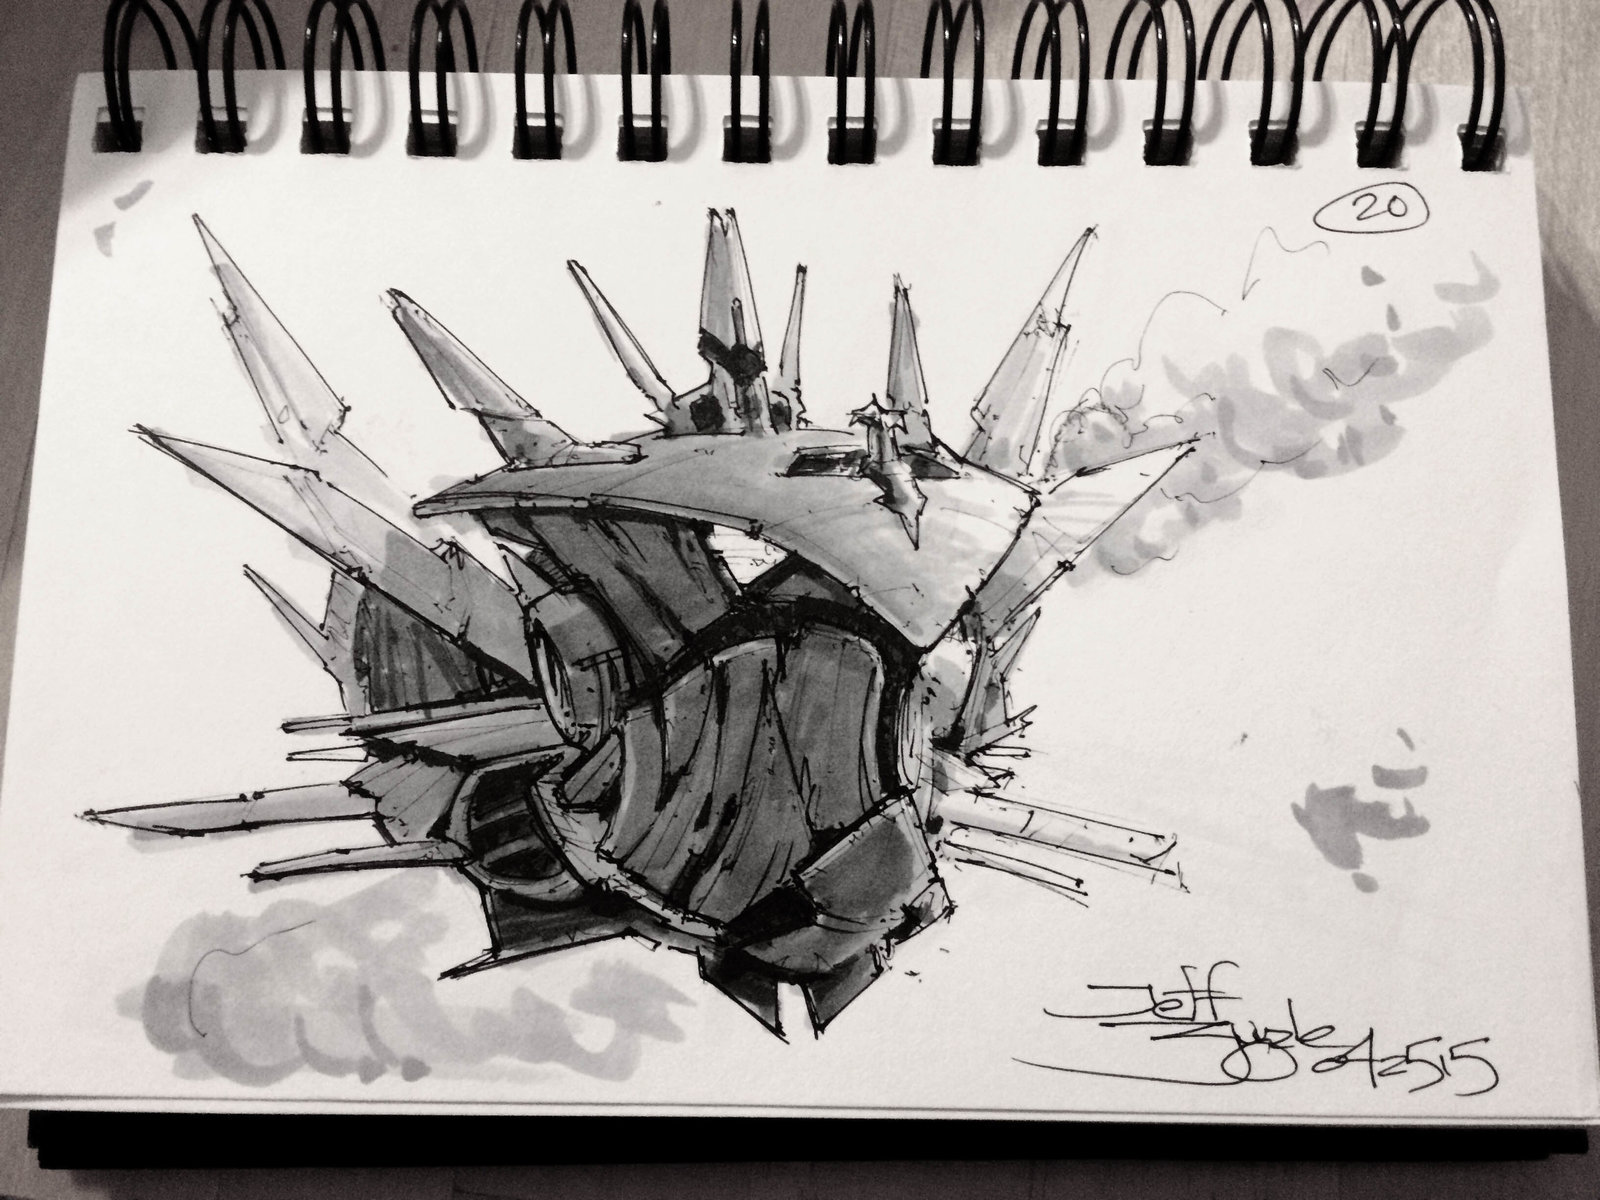 SpaceshipADay 020